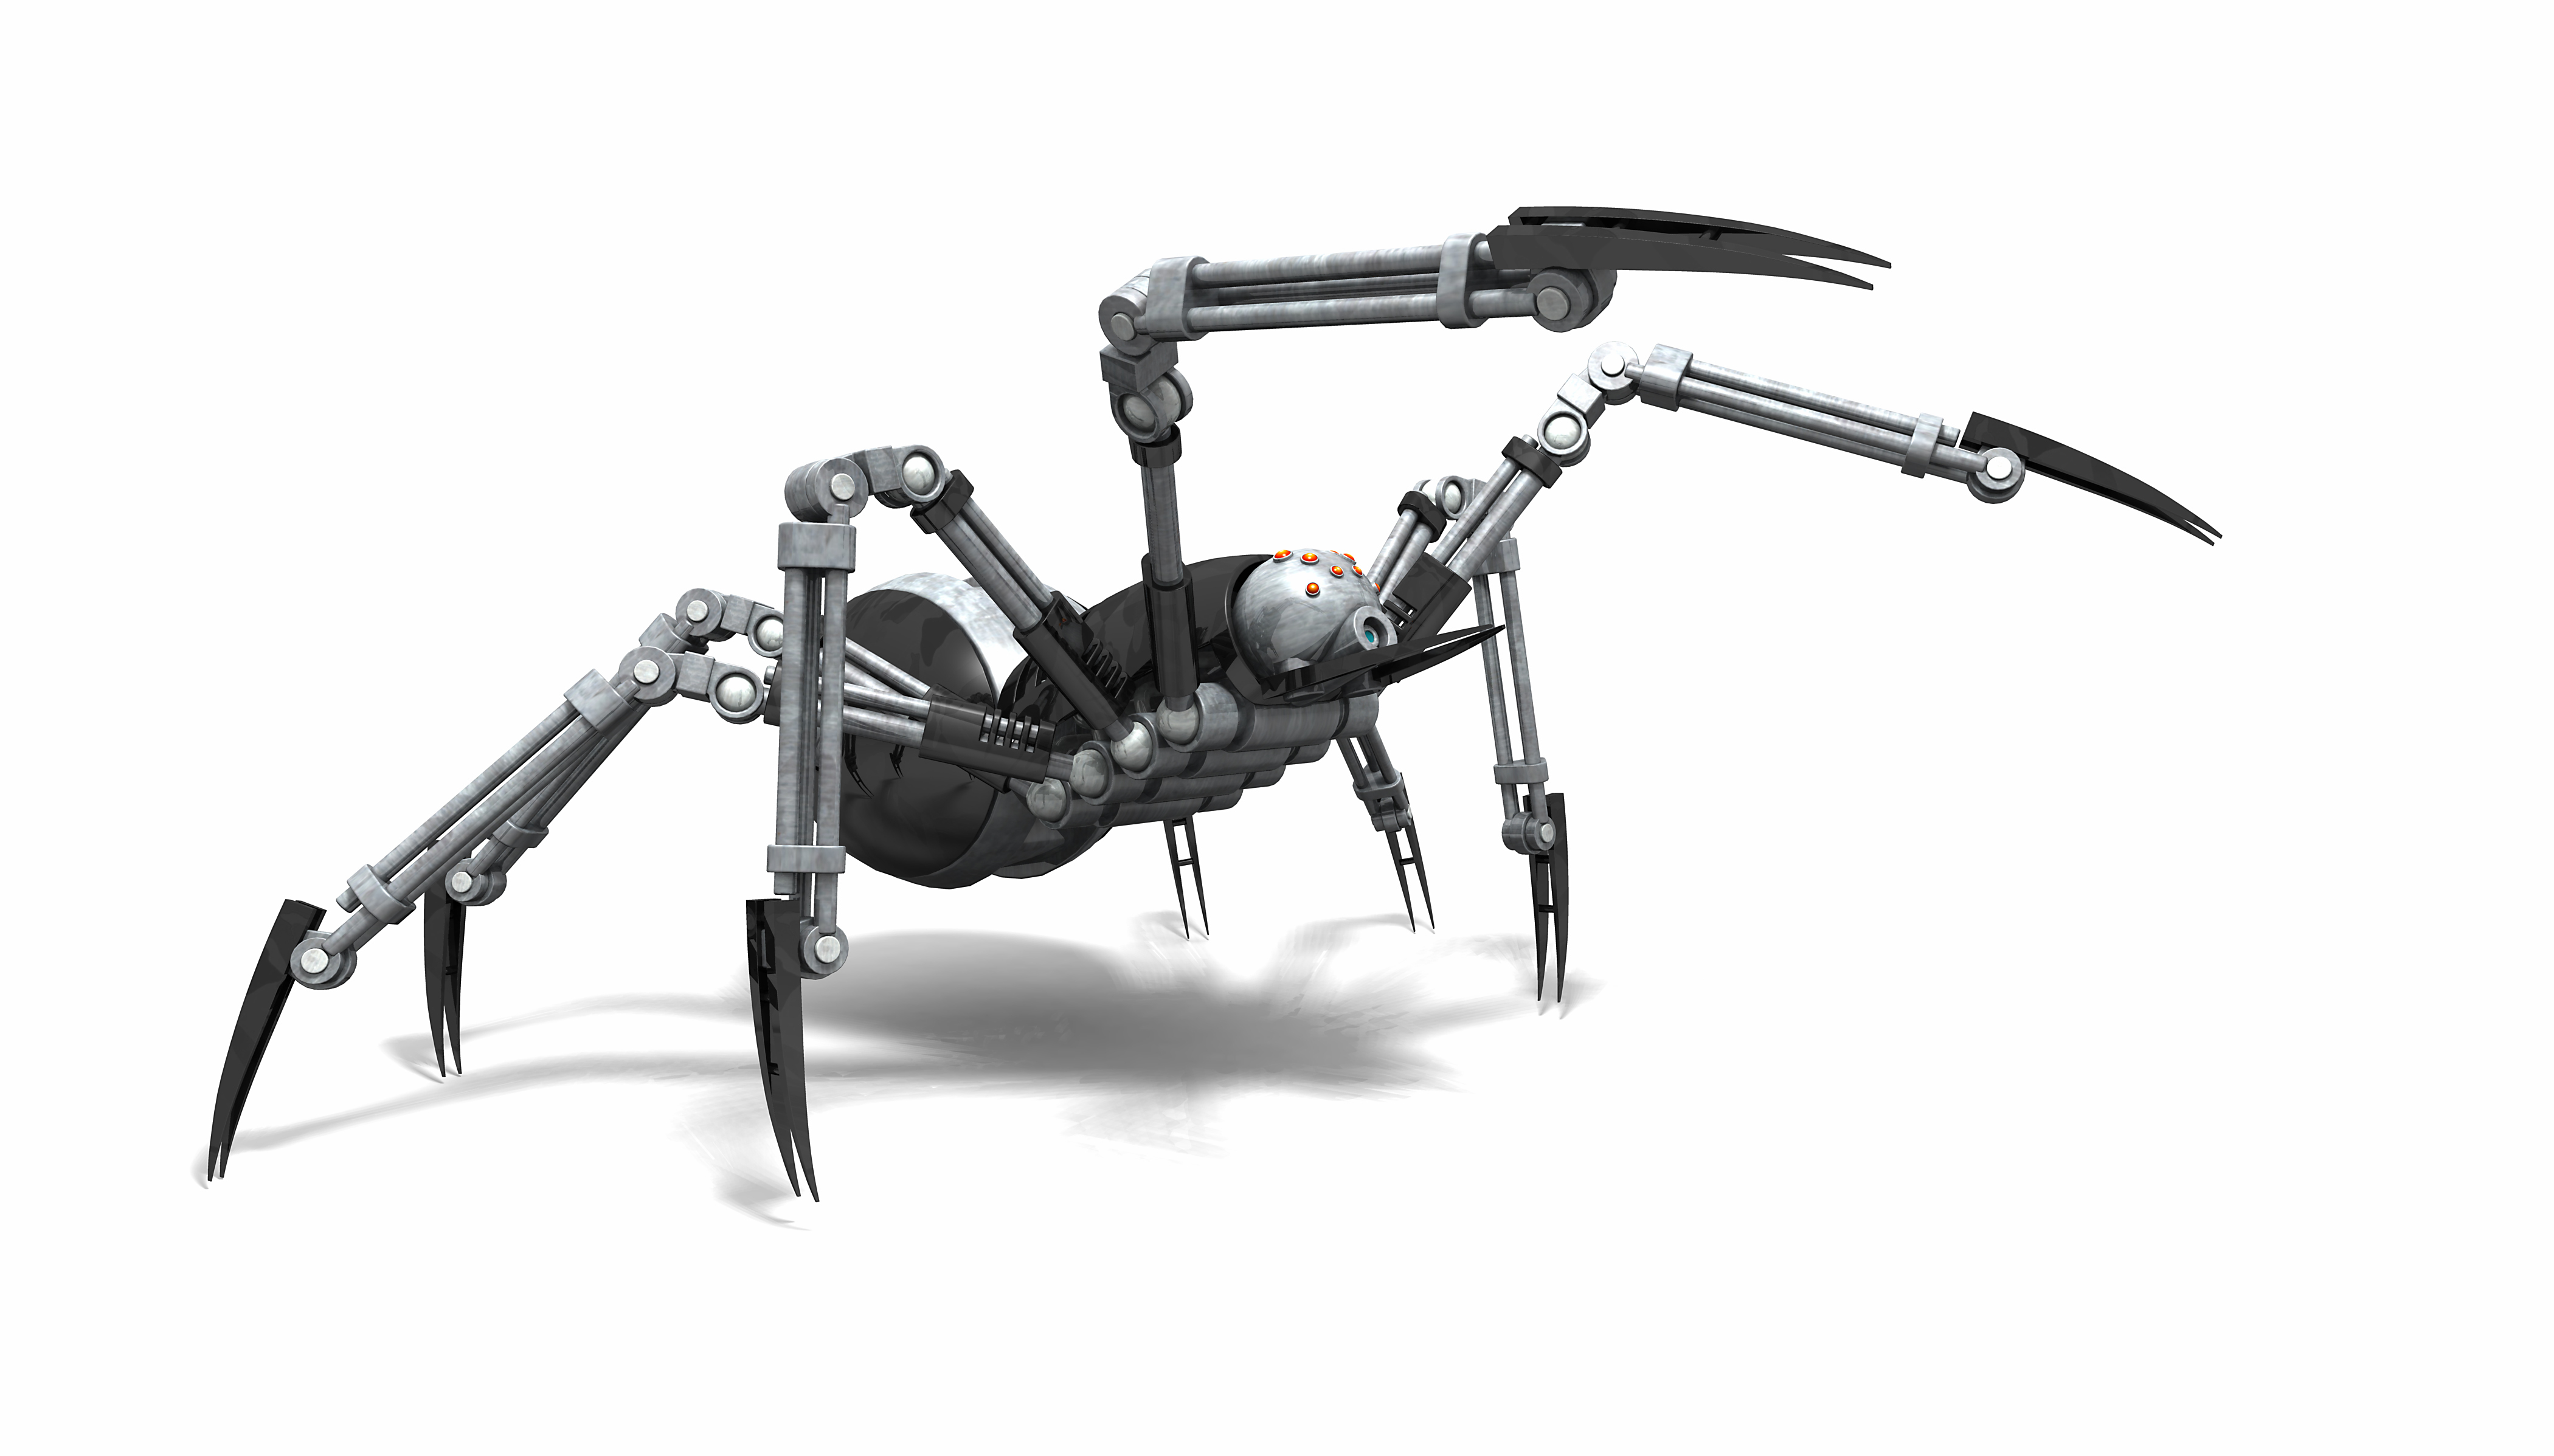 Researchers at the The University of Manchester are working to create electronic swarms of bees and jumping spider robots.